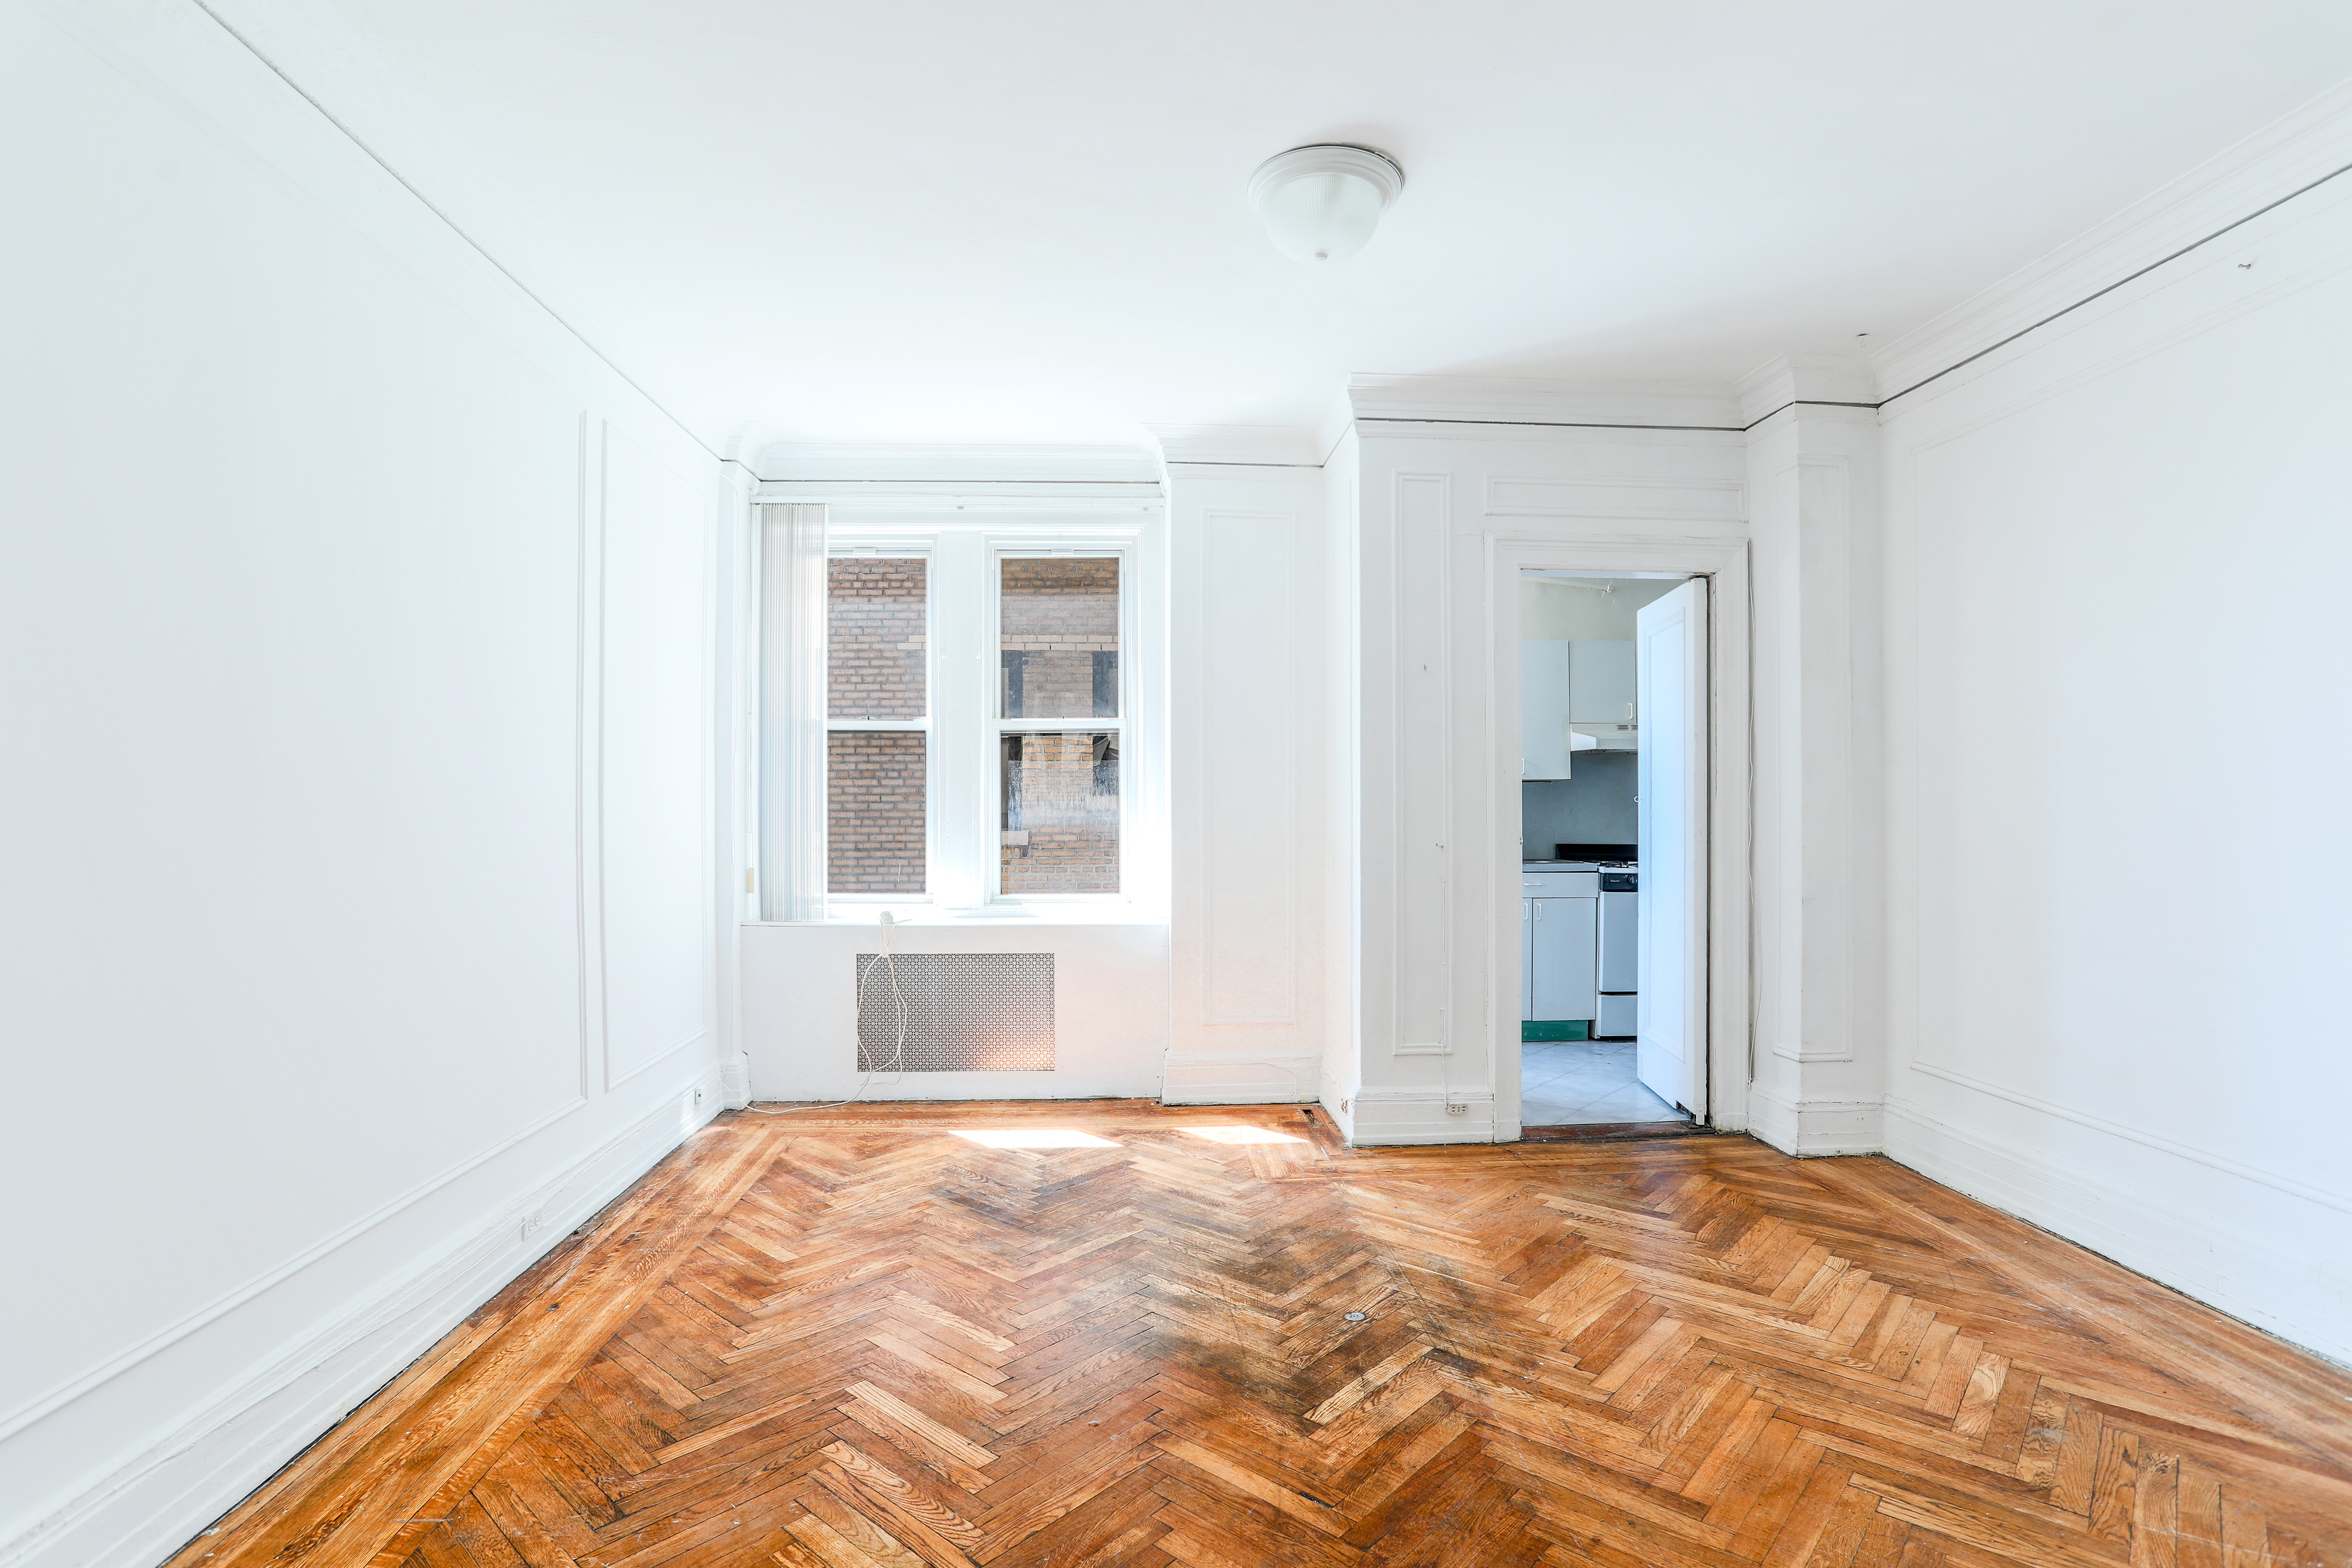 Formal dining room with herringbone floors and South exposures